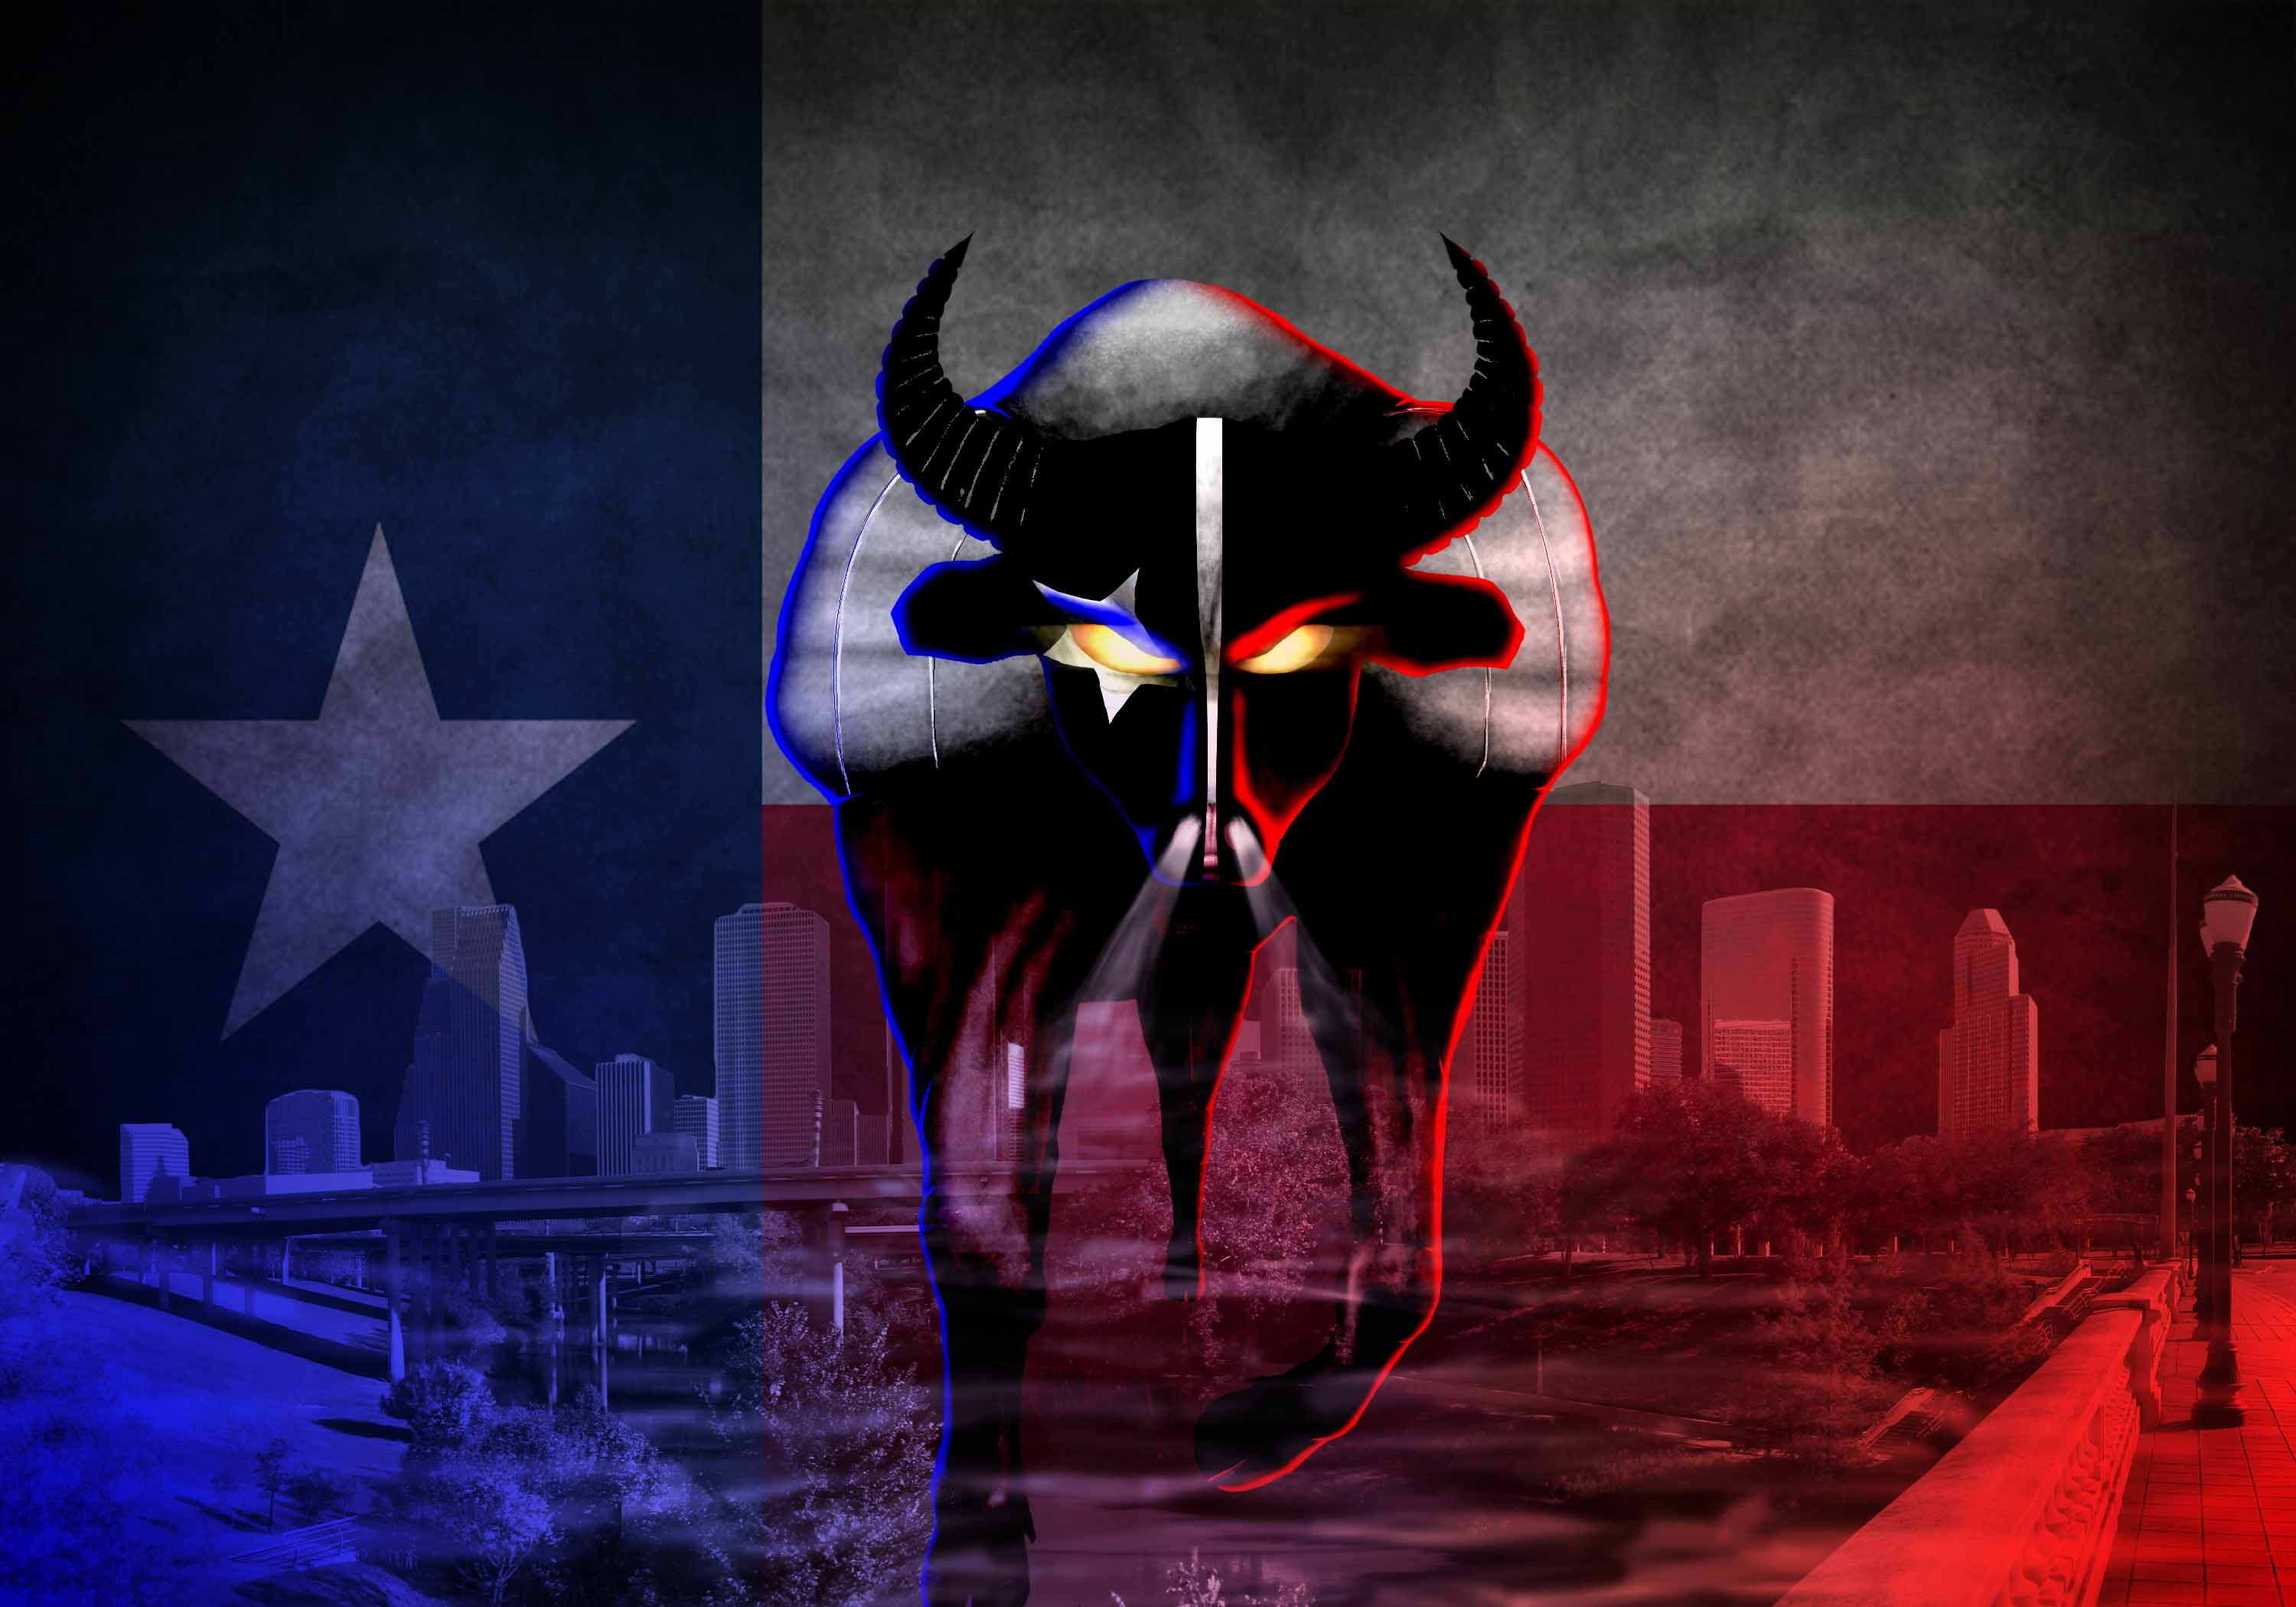 HOUSTON TEXANS nfl football demon dark wallpaper background 3000x2100